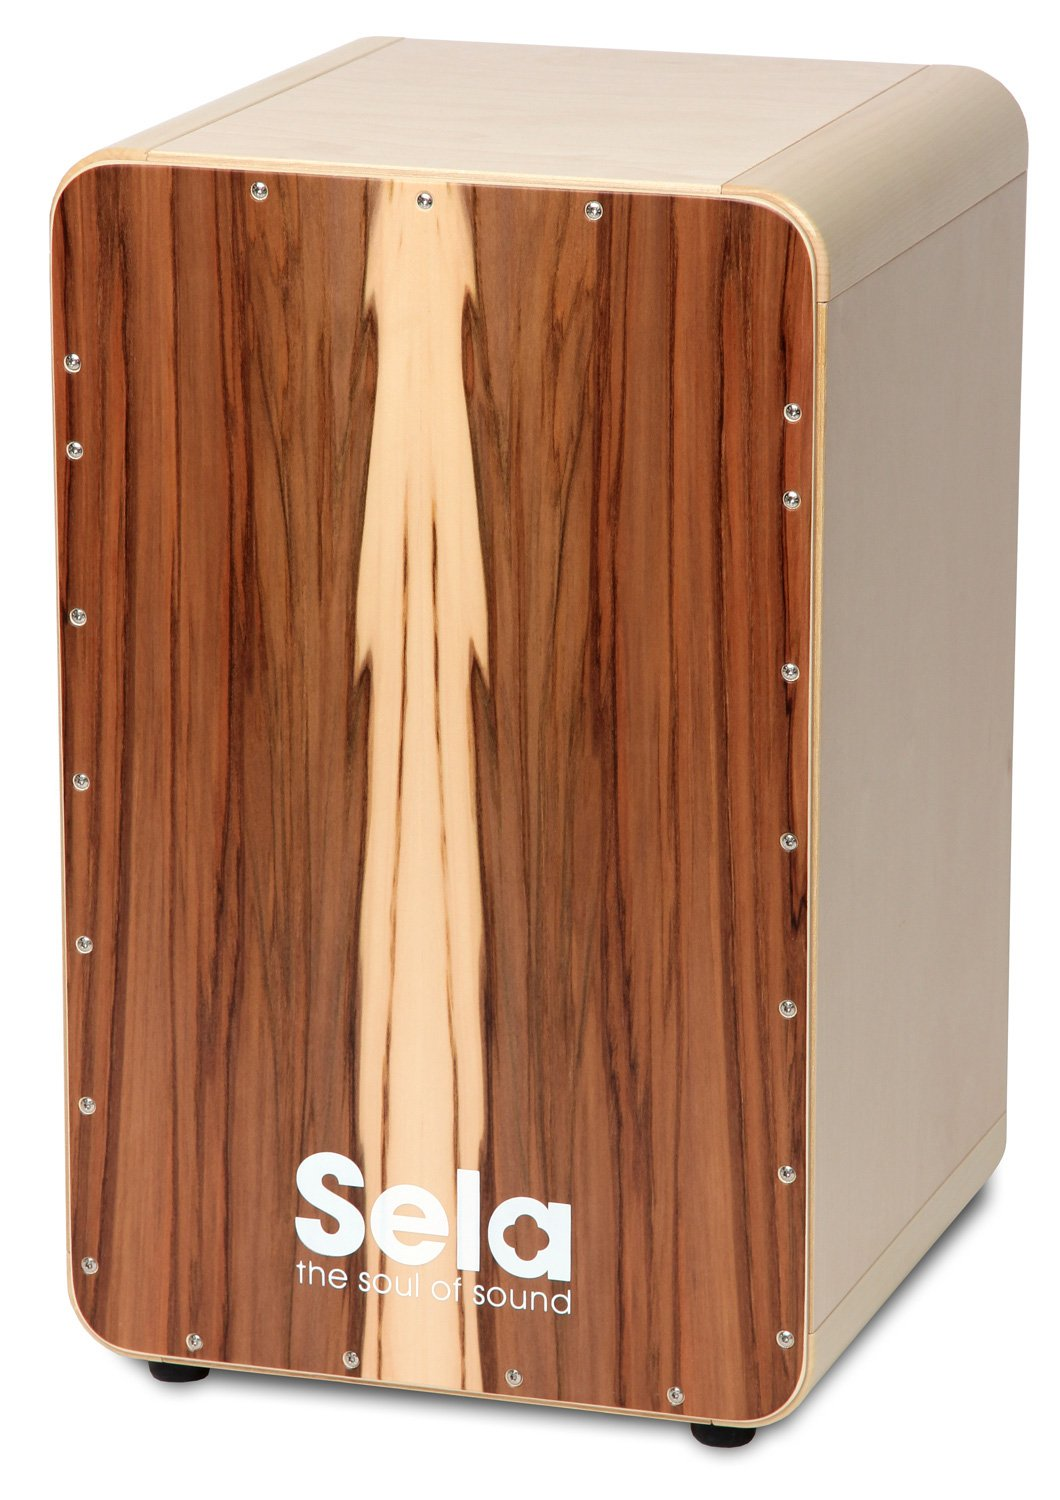 Sela SE 002A CaSela Satin Nut Professional Cajon with Removable Snare System and Special Clap Corners by sela